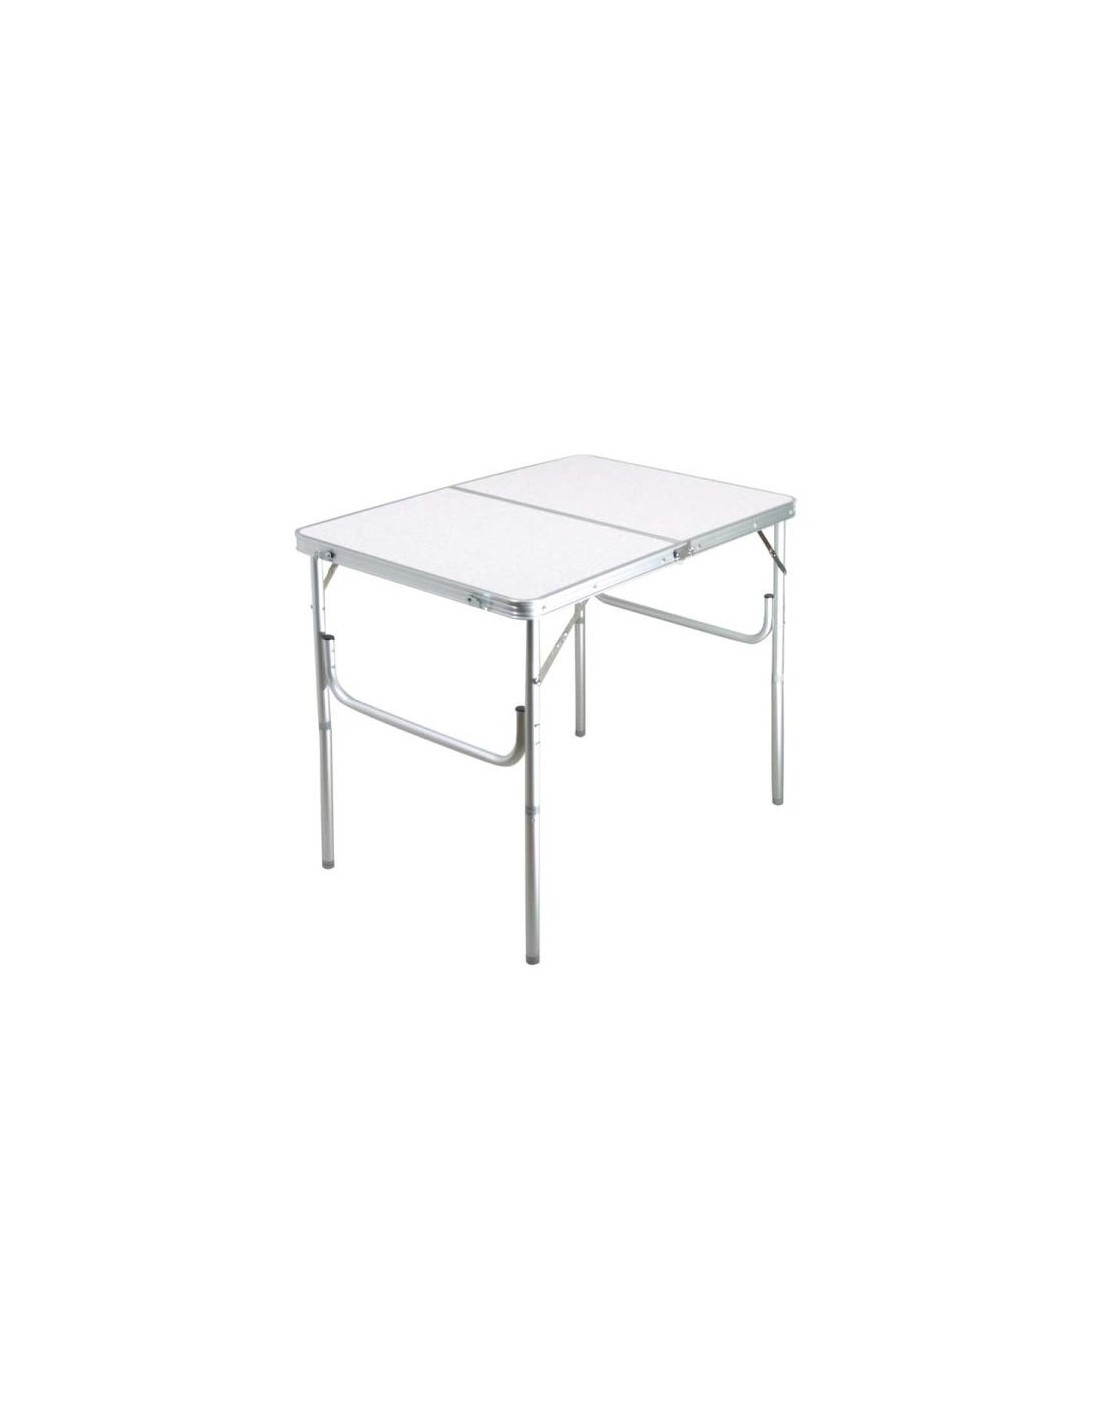 Mesa maleta luxus plegable 90 x 60 cm camp4 tienda de for Mesa plegable camping